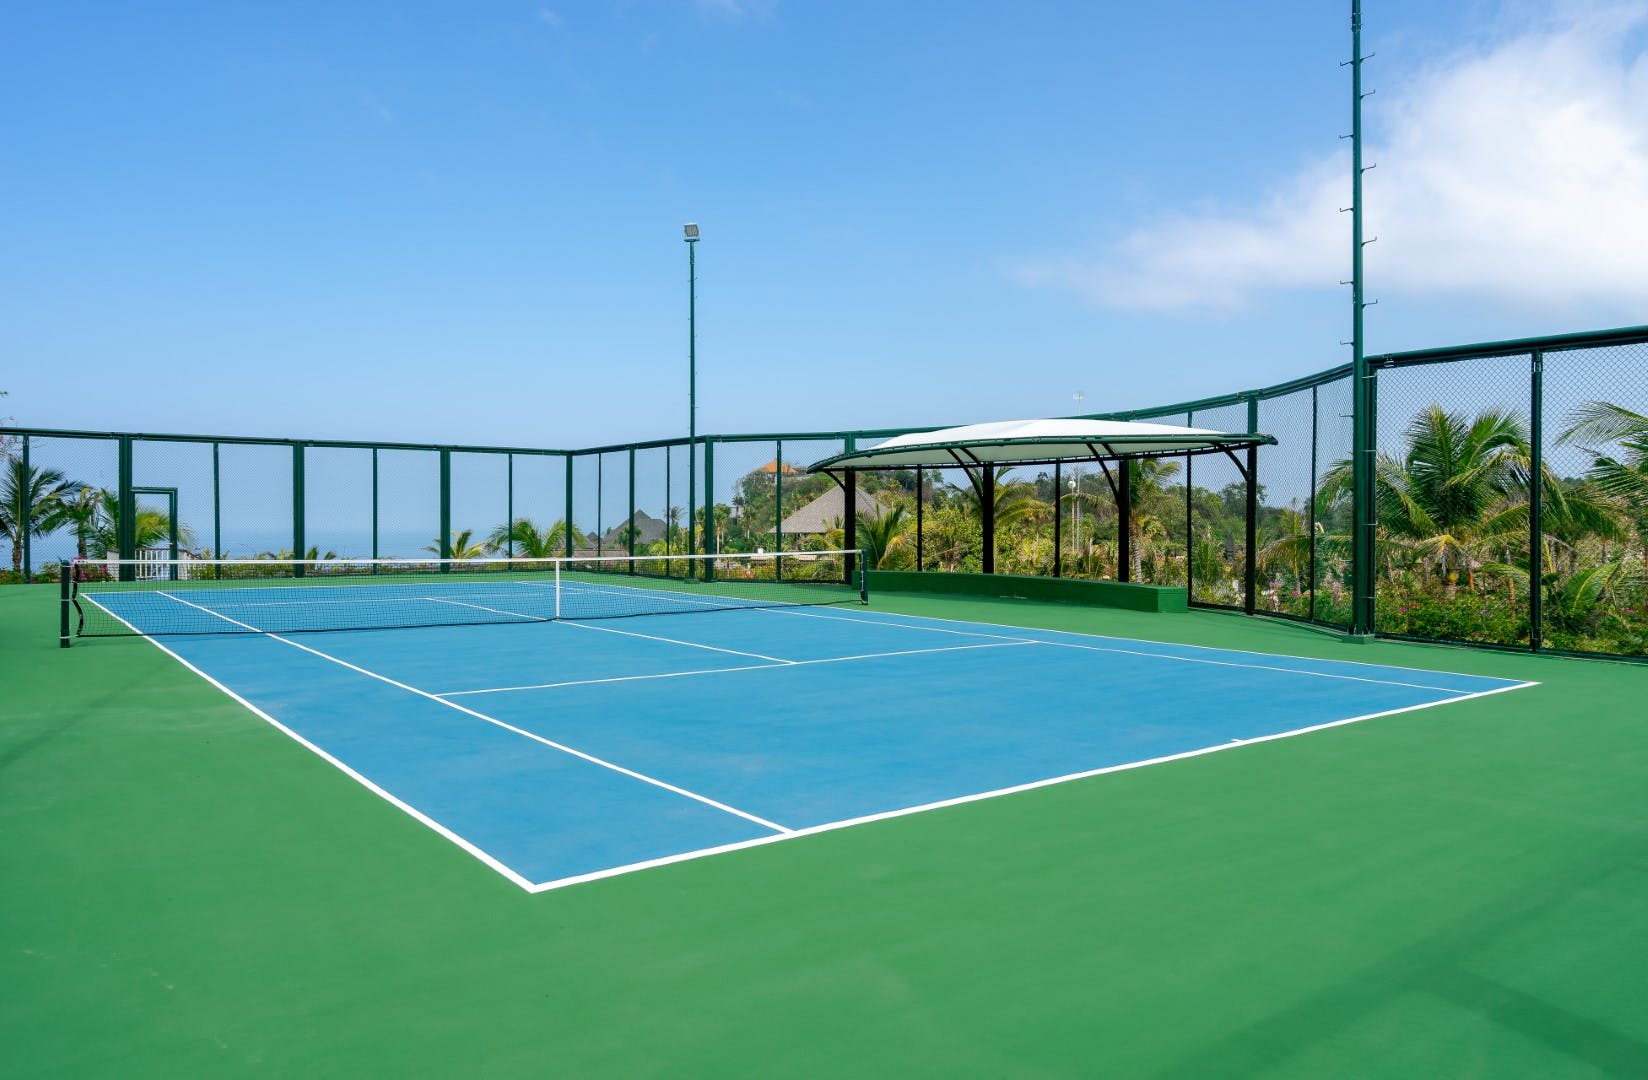 The Tennis Court - The edge Luxury Villa Resort, Pecatu, Uluwatu, Bali Indonesia